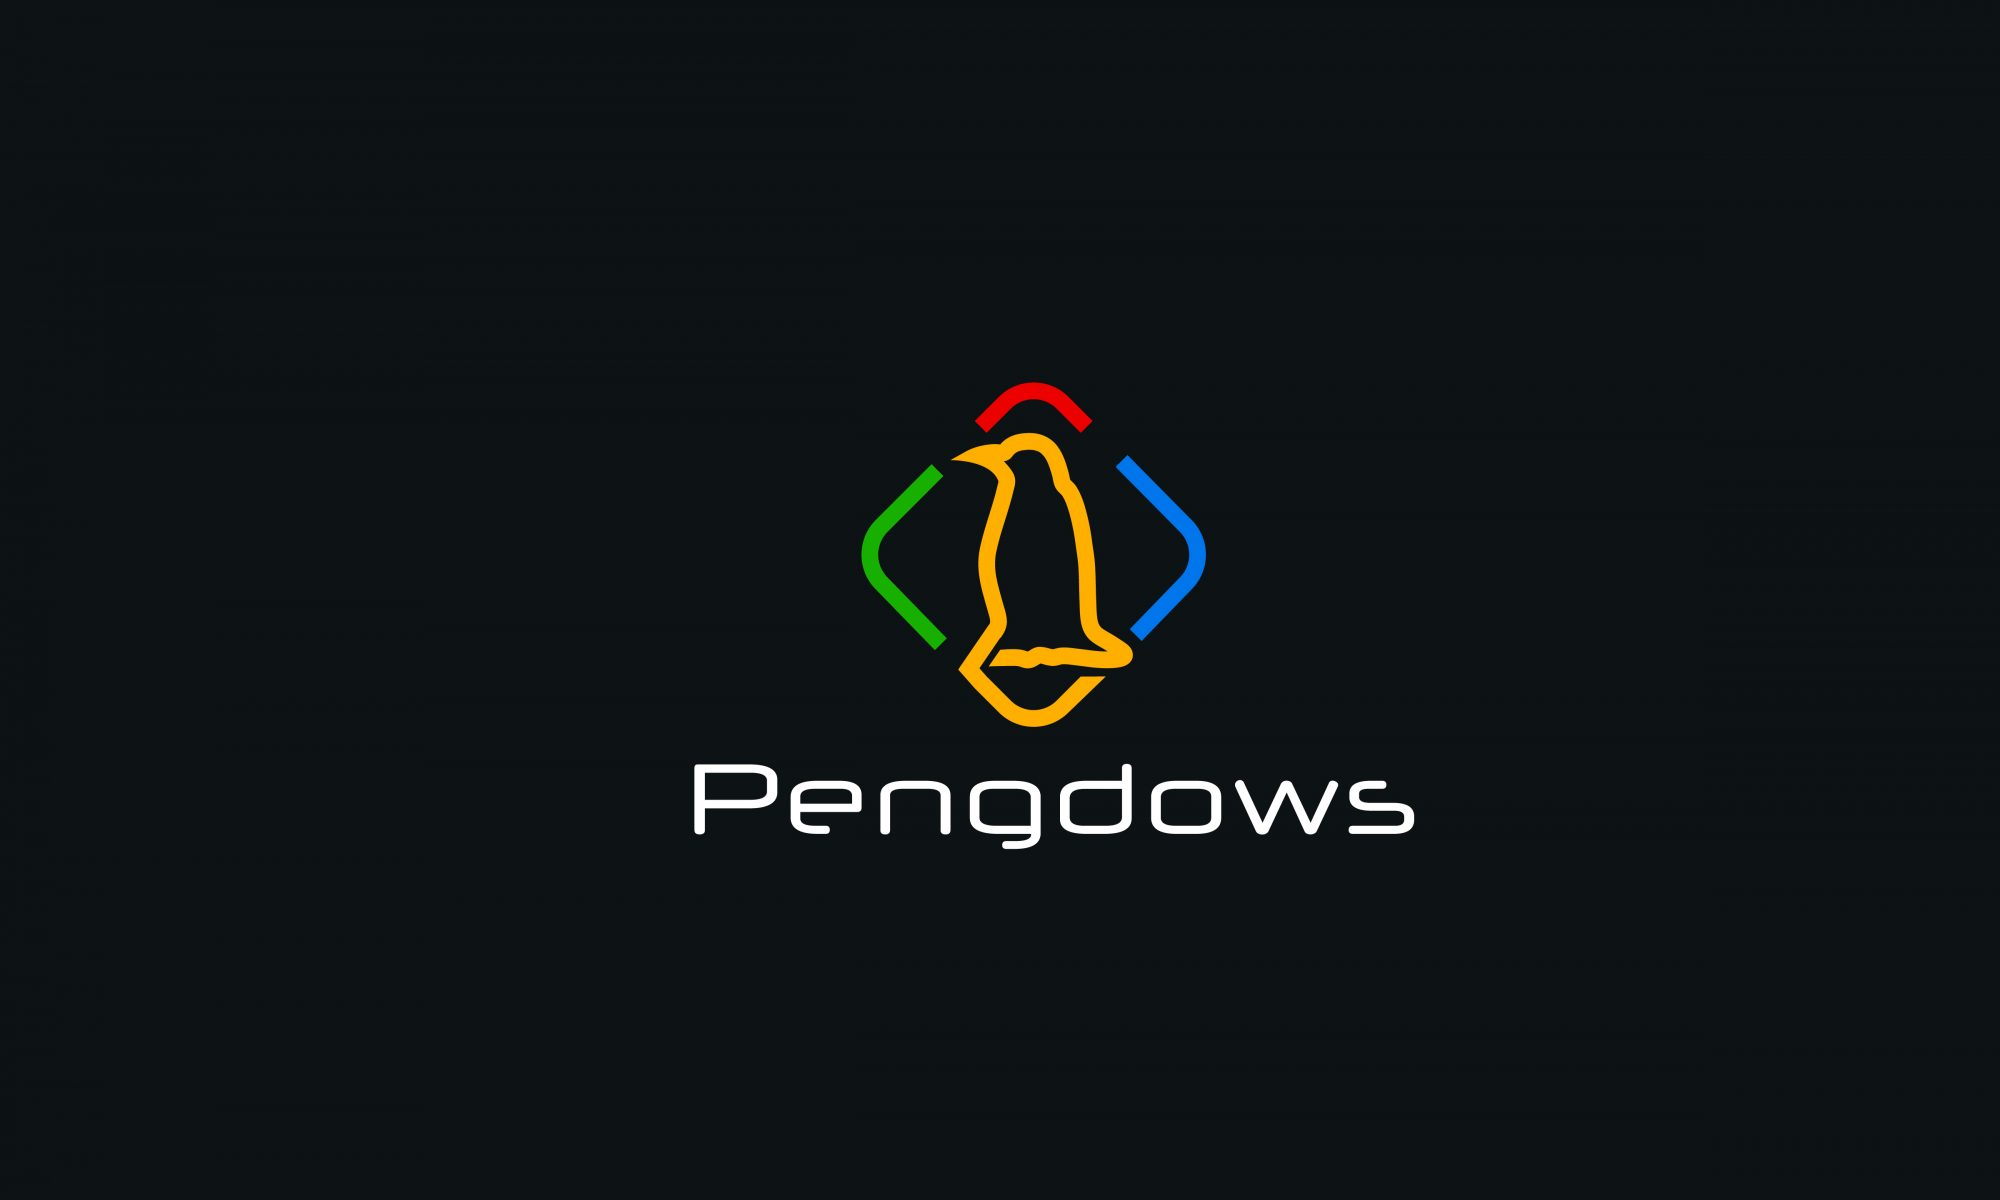 Pengdows